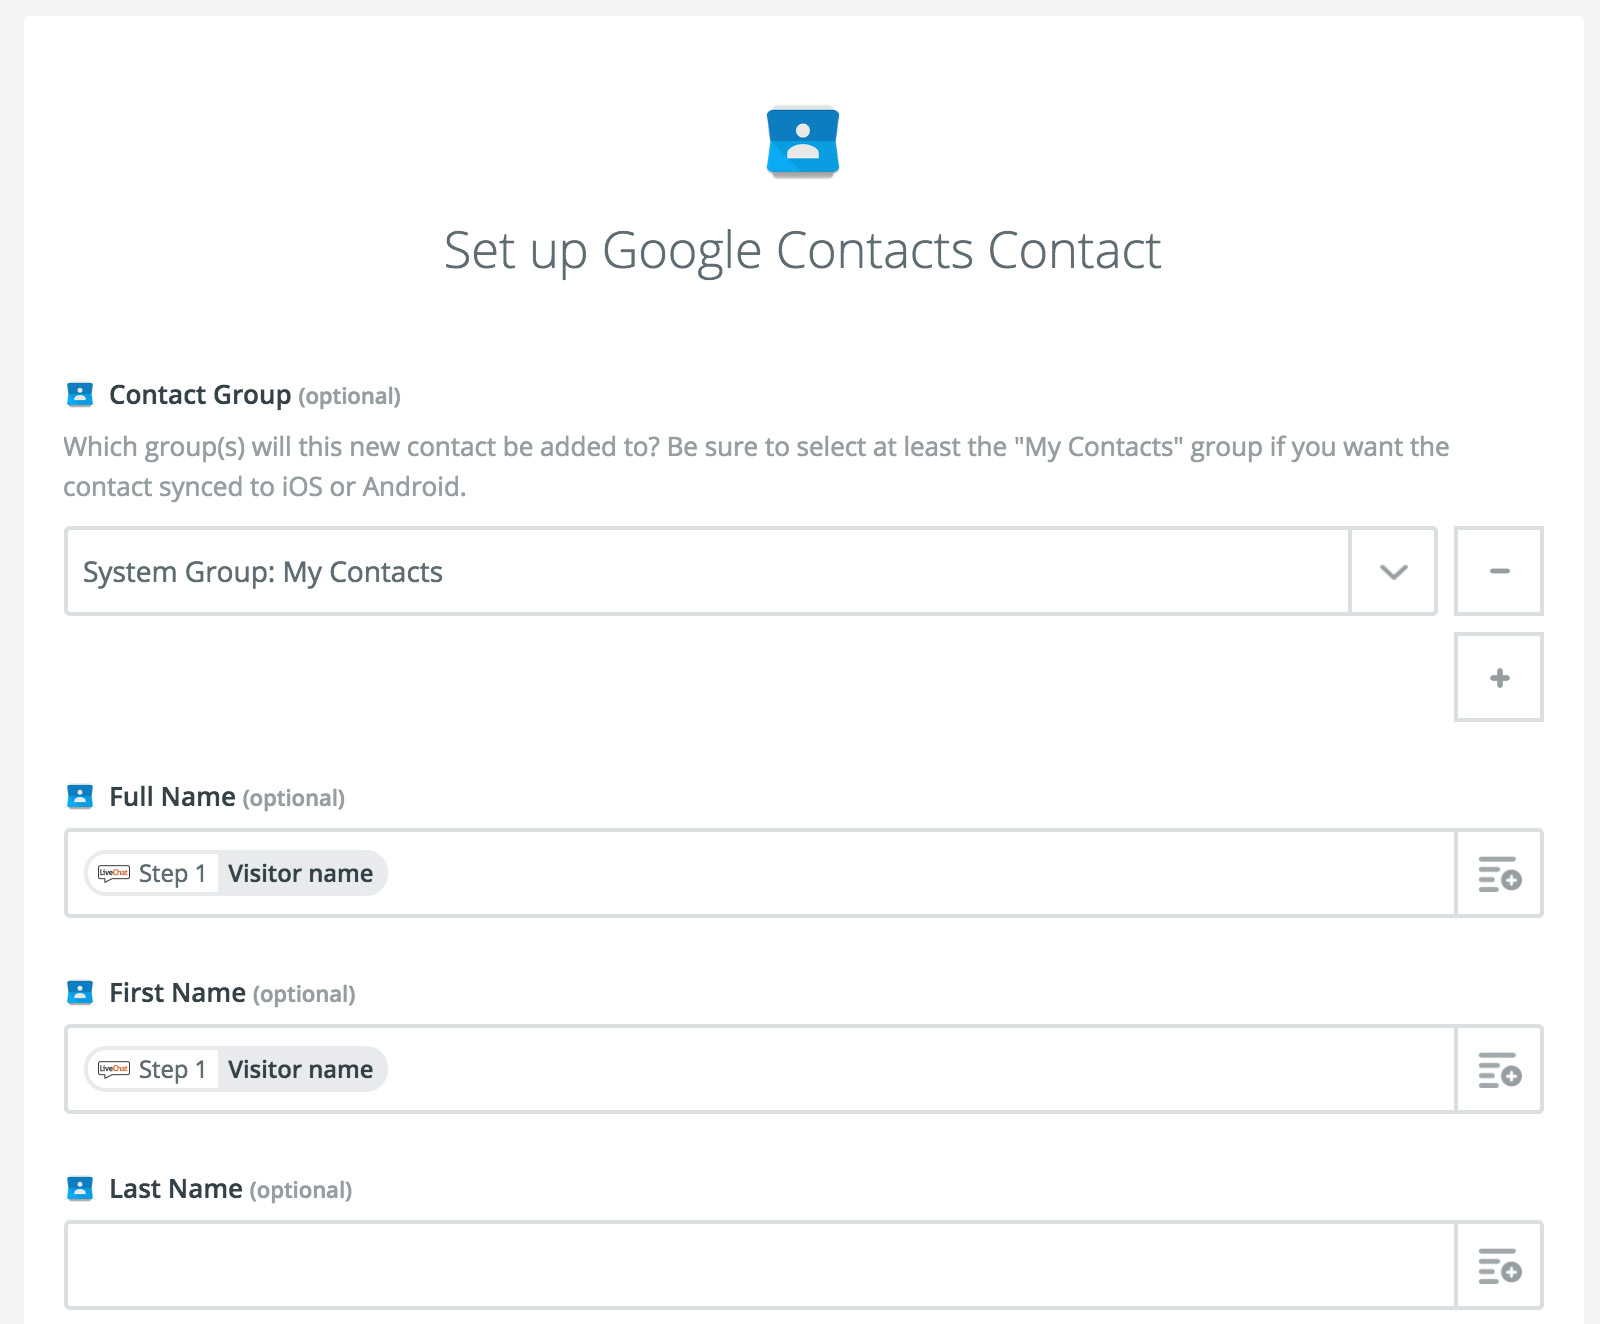 Mapping Google Contacts fields